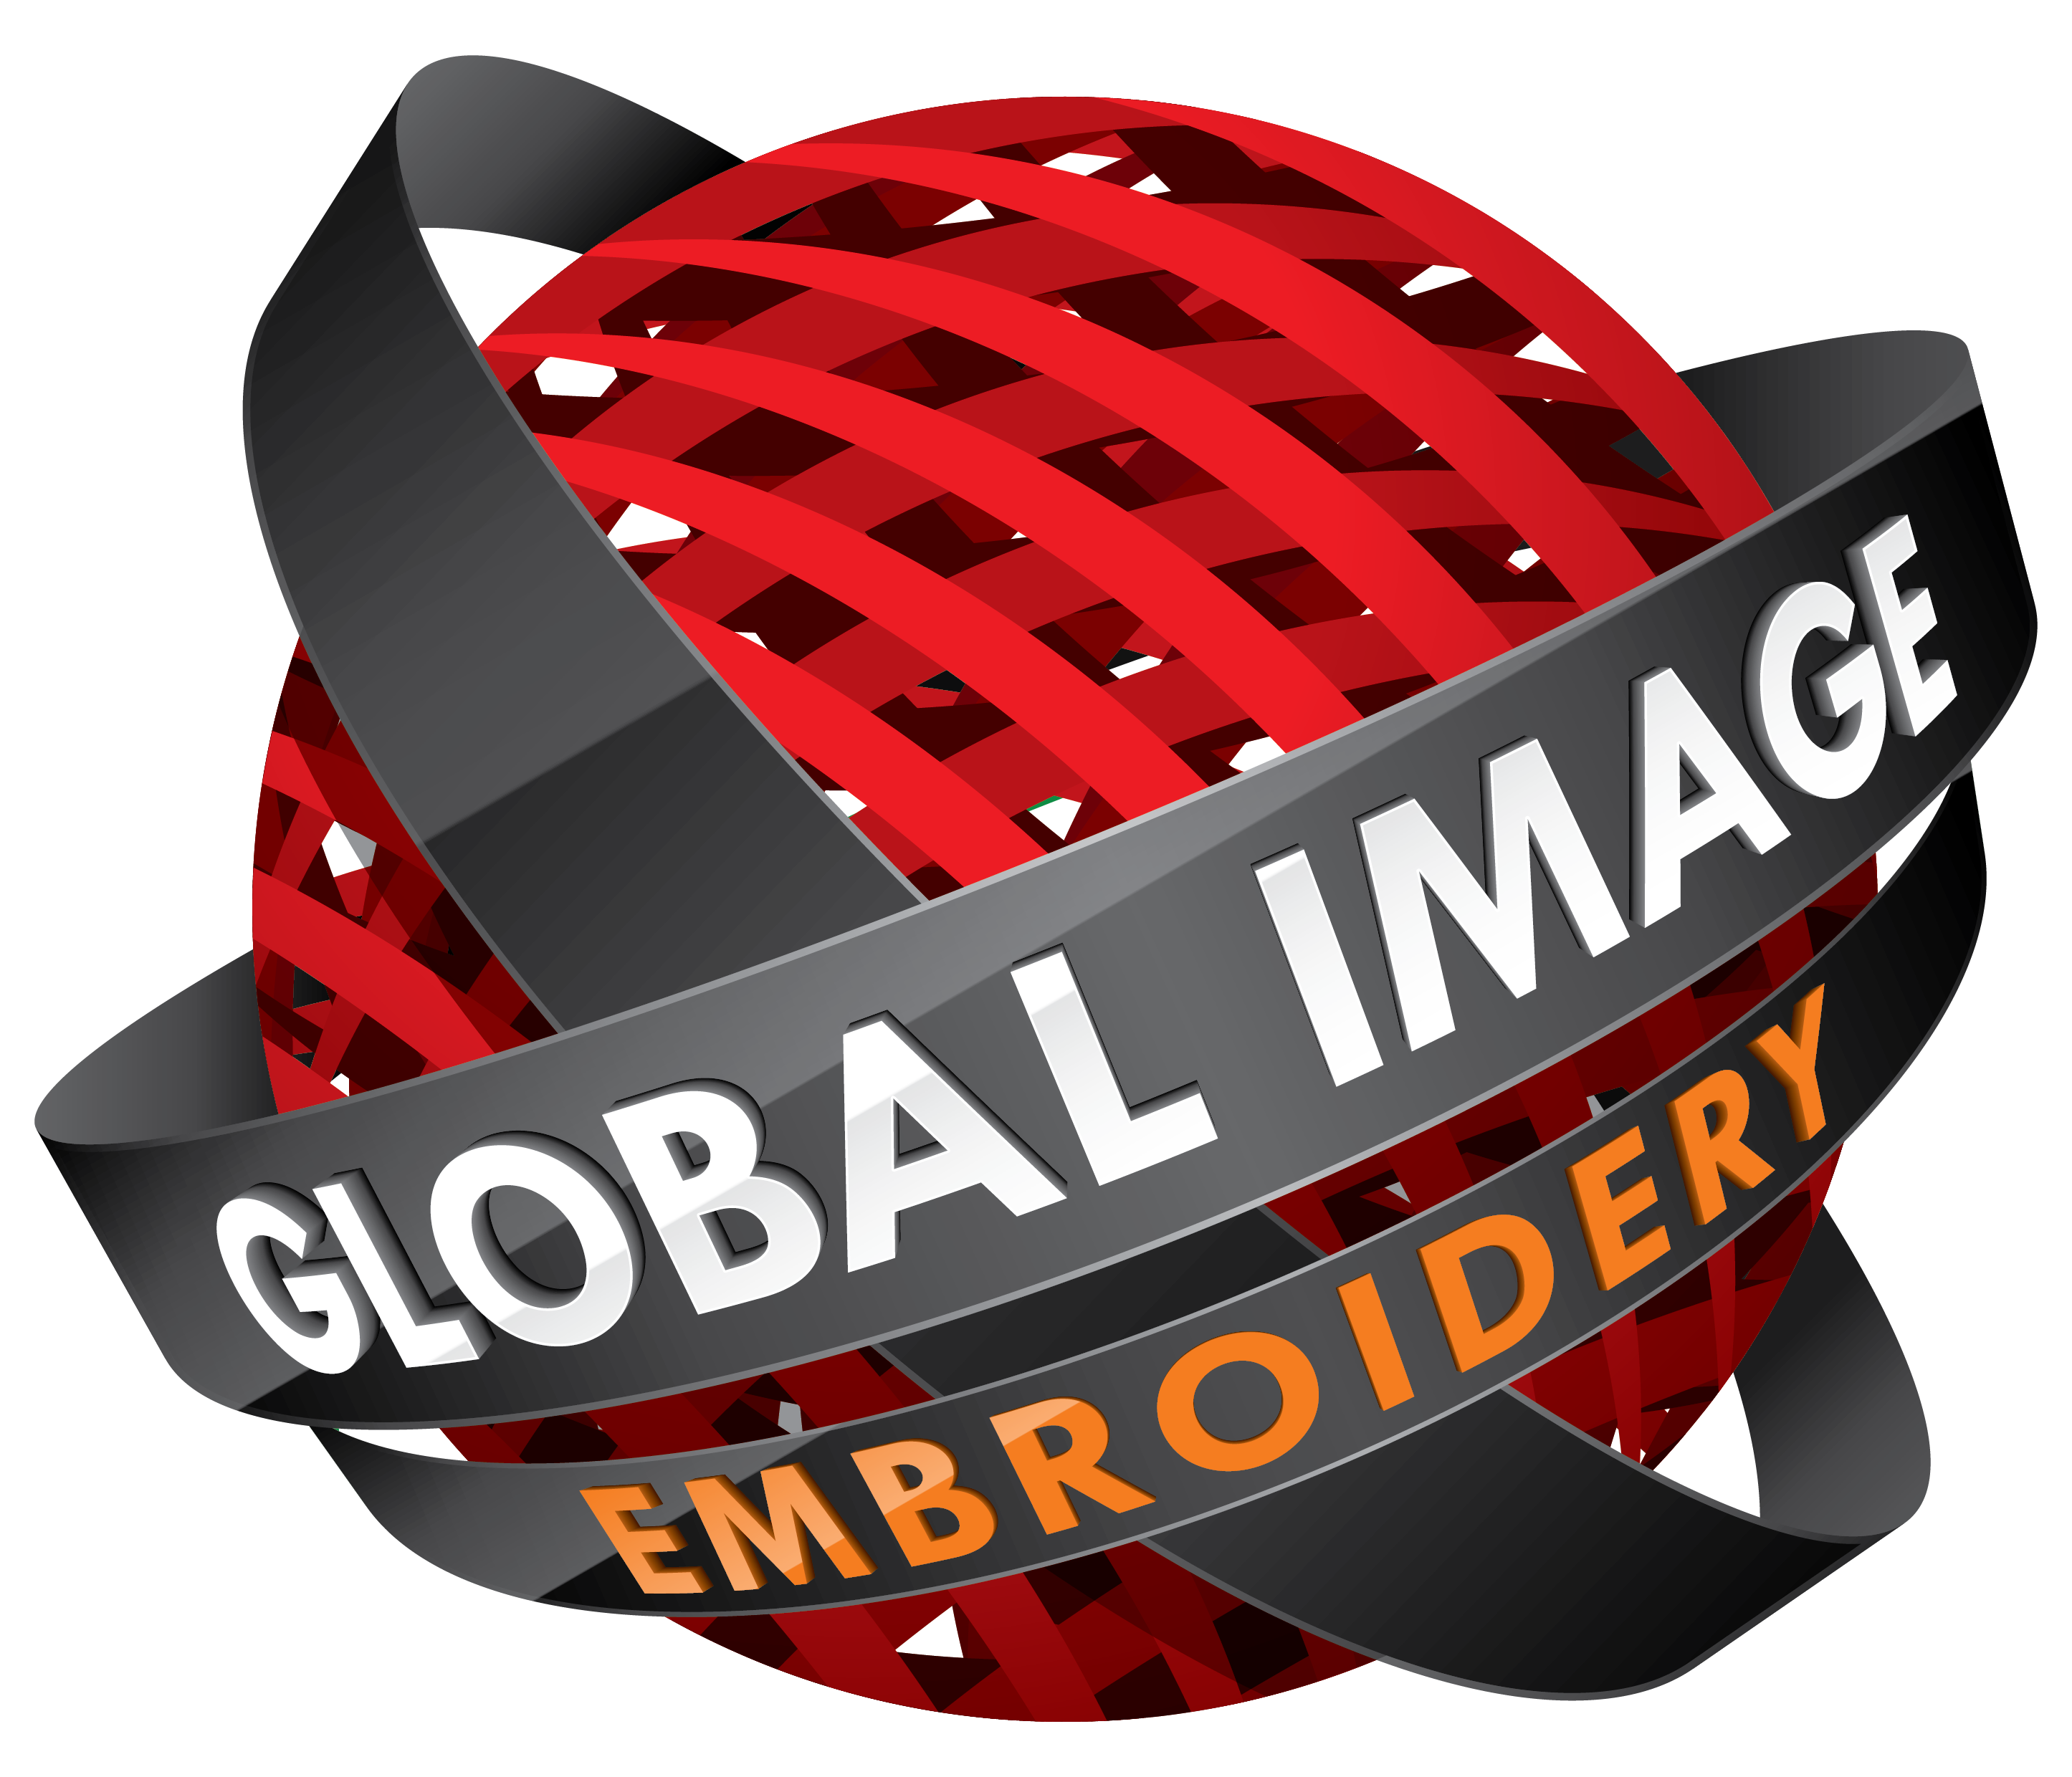 Global Image Embroidery Photo